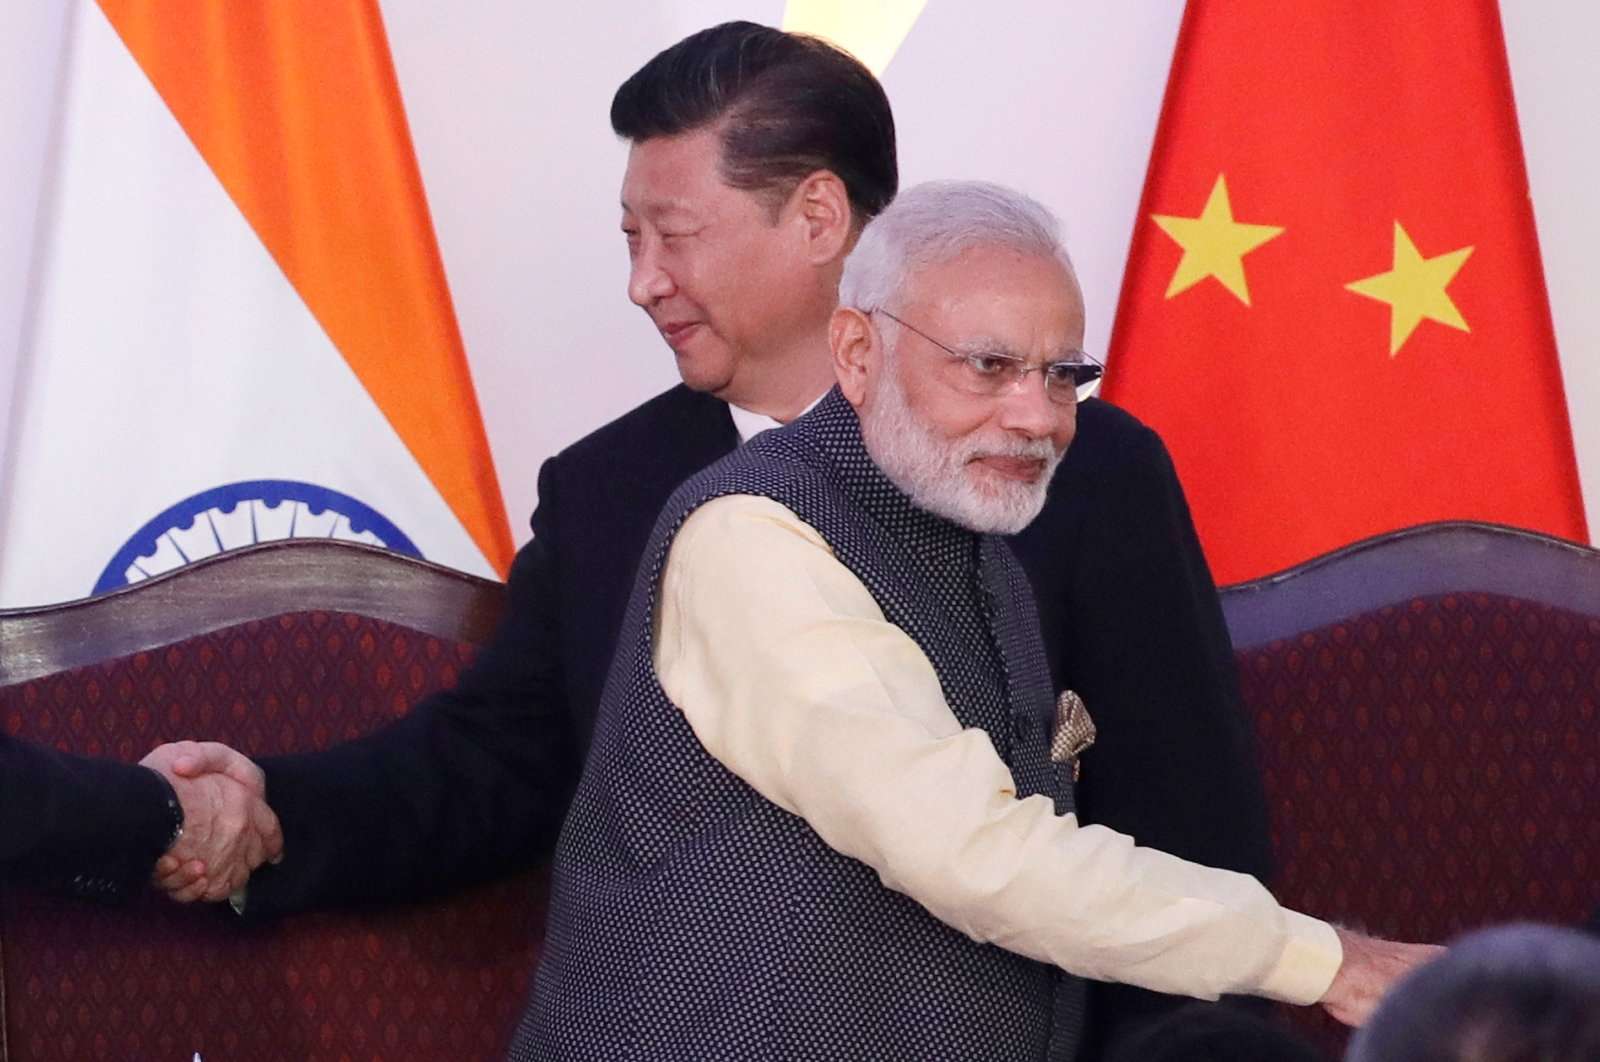 Chinese President Xi Jinping (L) and Indian Prime Minister Narendra Modi shake hands with leaders at the BRICS (Brazil, Russia, India, China and South Africa) summit, Goa, India, Oct. 16, 2016. (AP Photo)